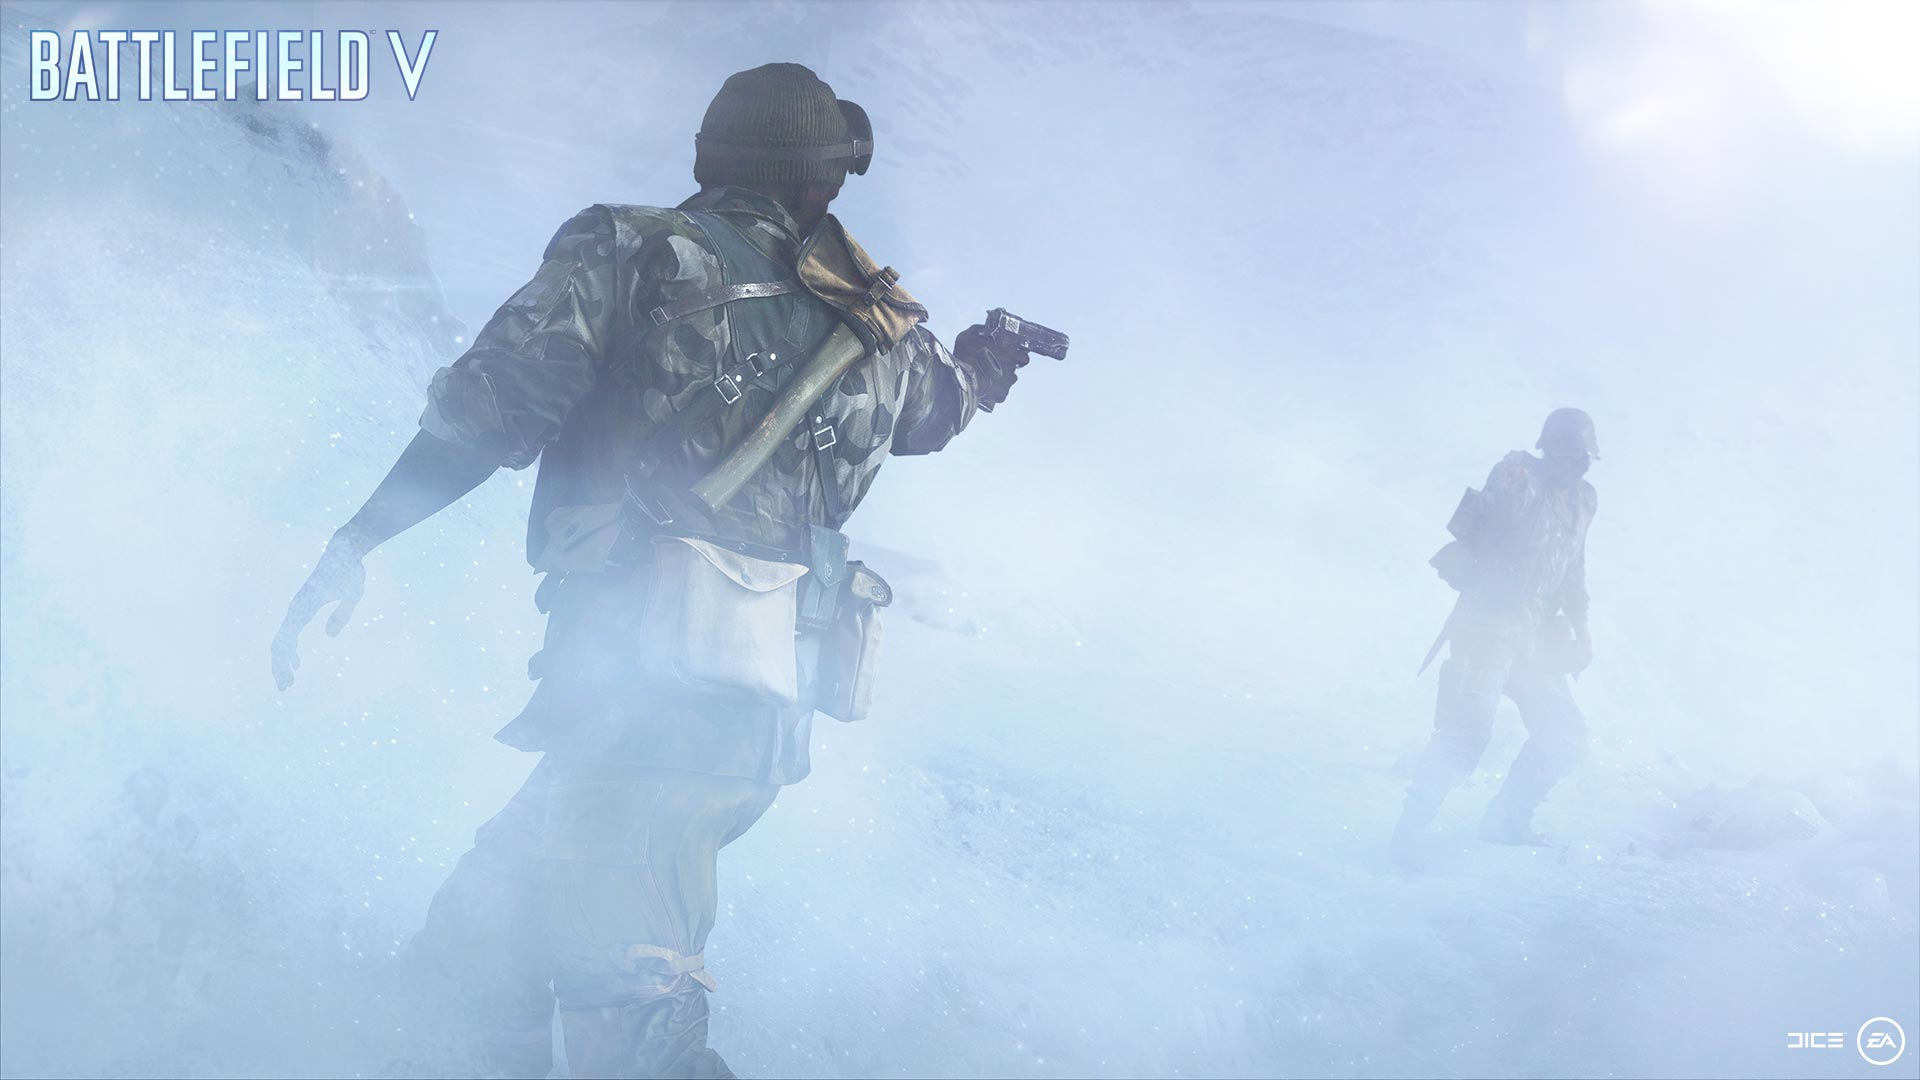 Battlefield 5 soldiers fighting in fog